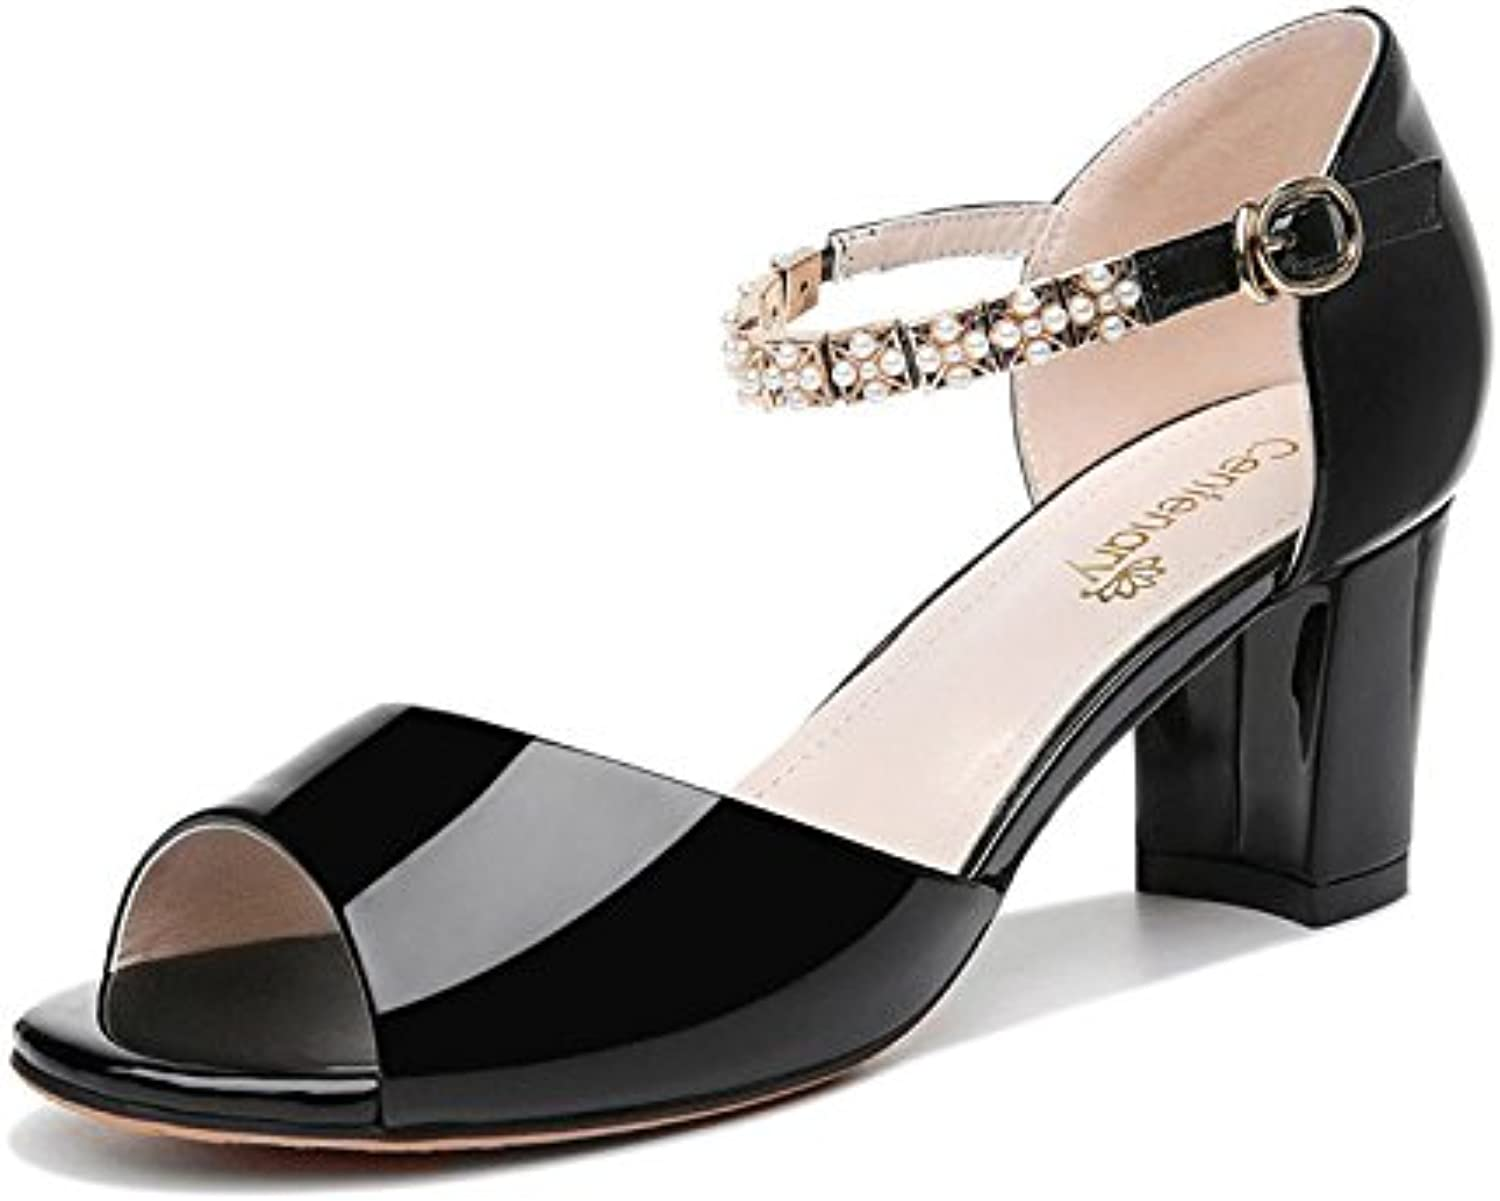 A Pair of Heels and high Heels, Ladies' Sandals, Summer high Heels and Sandals.